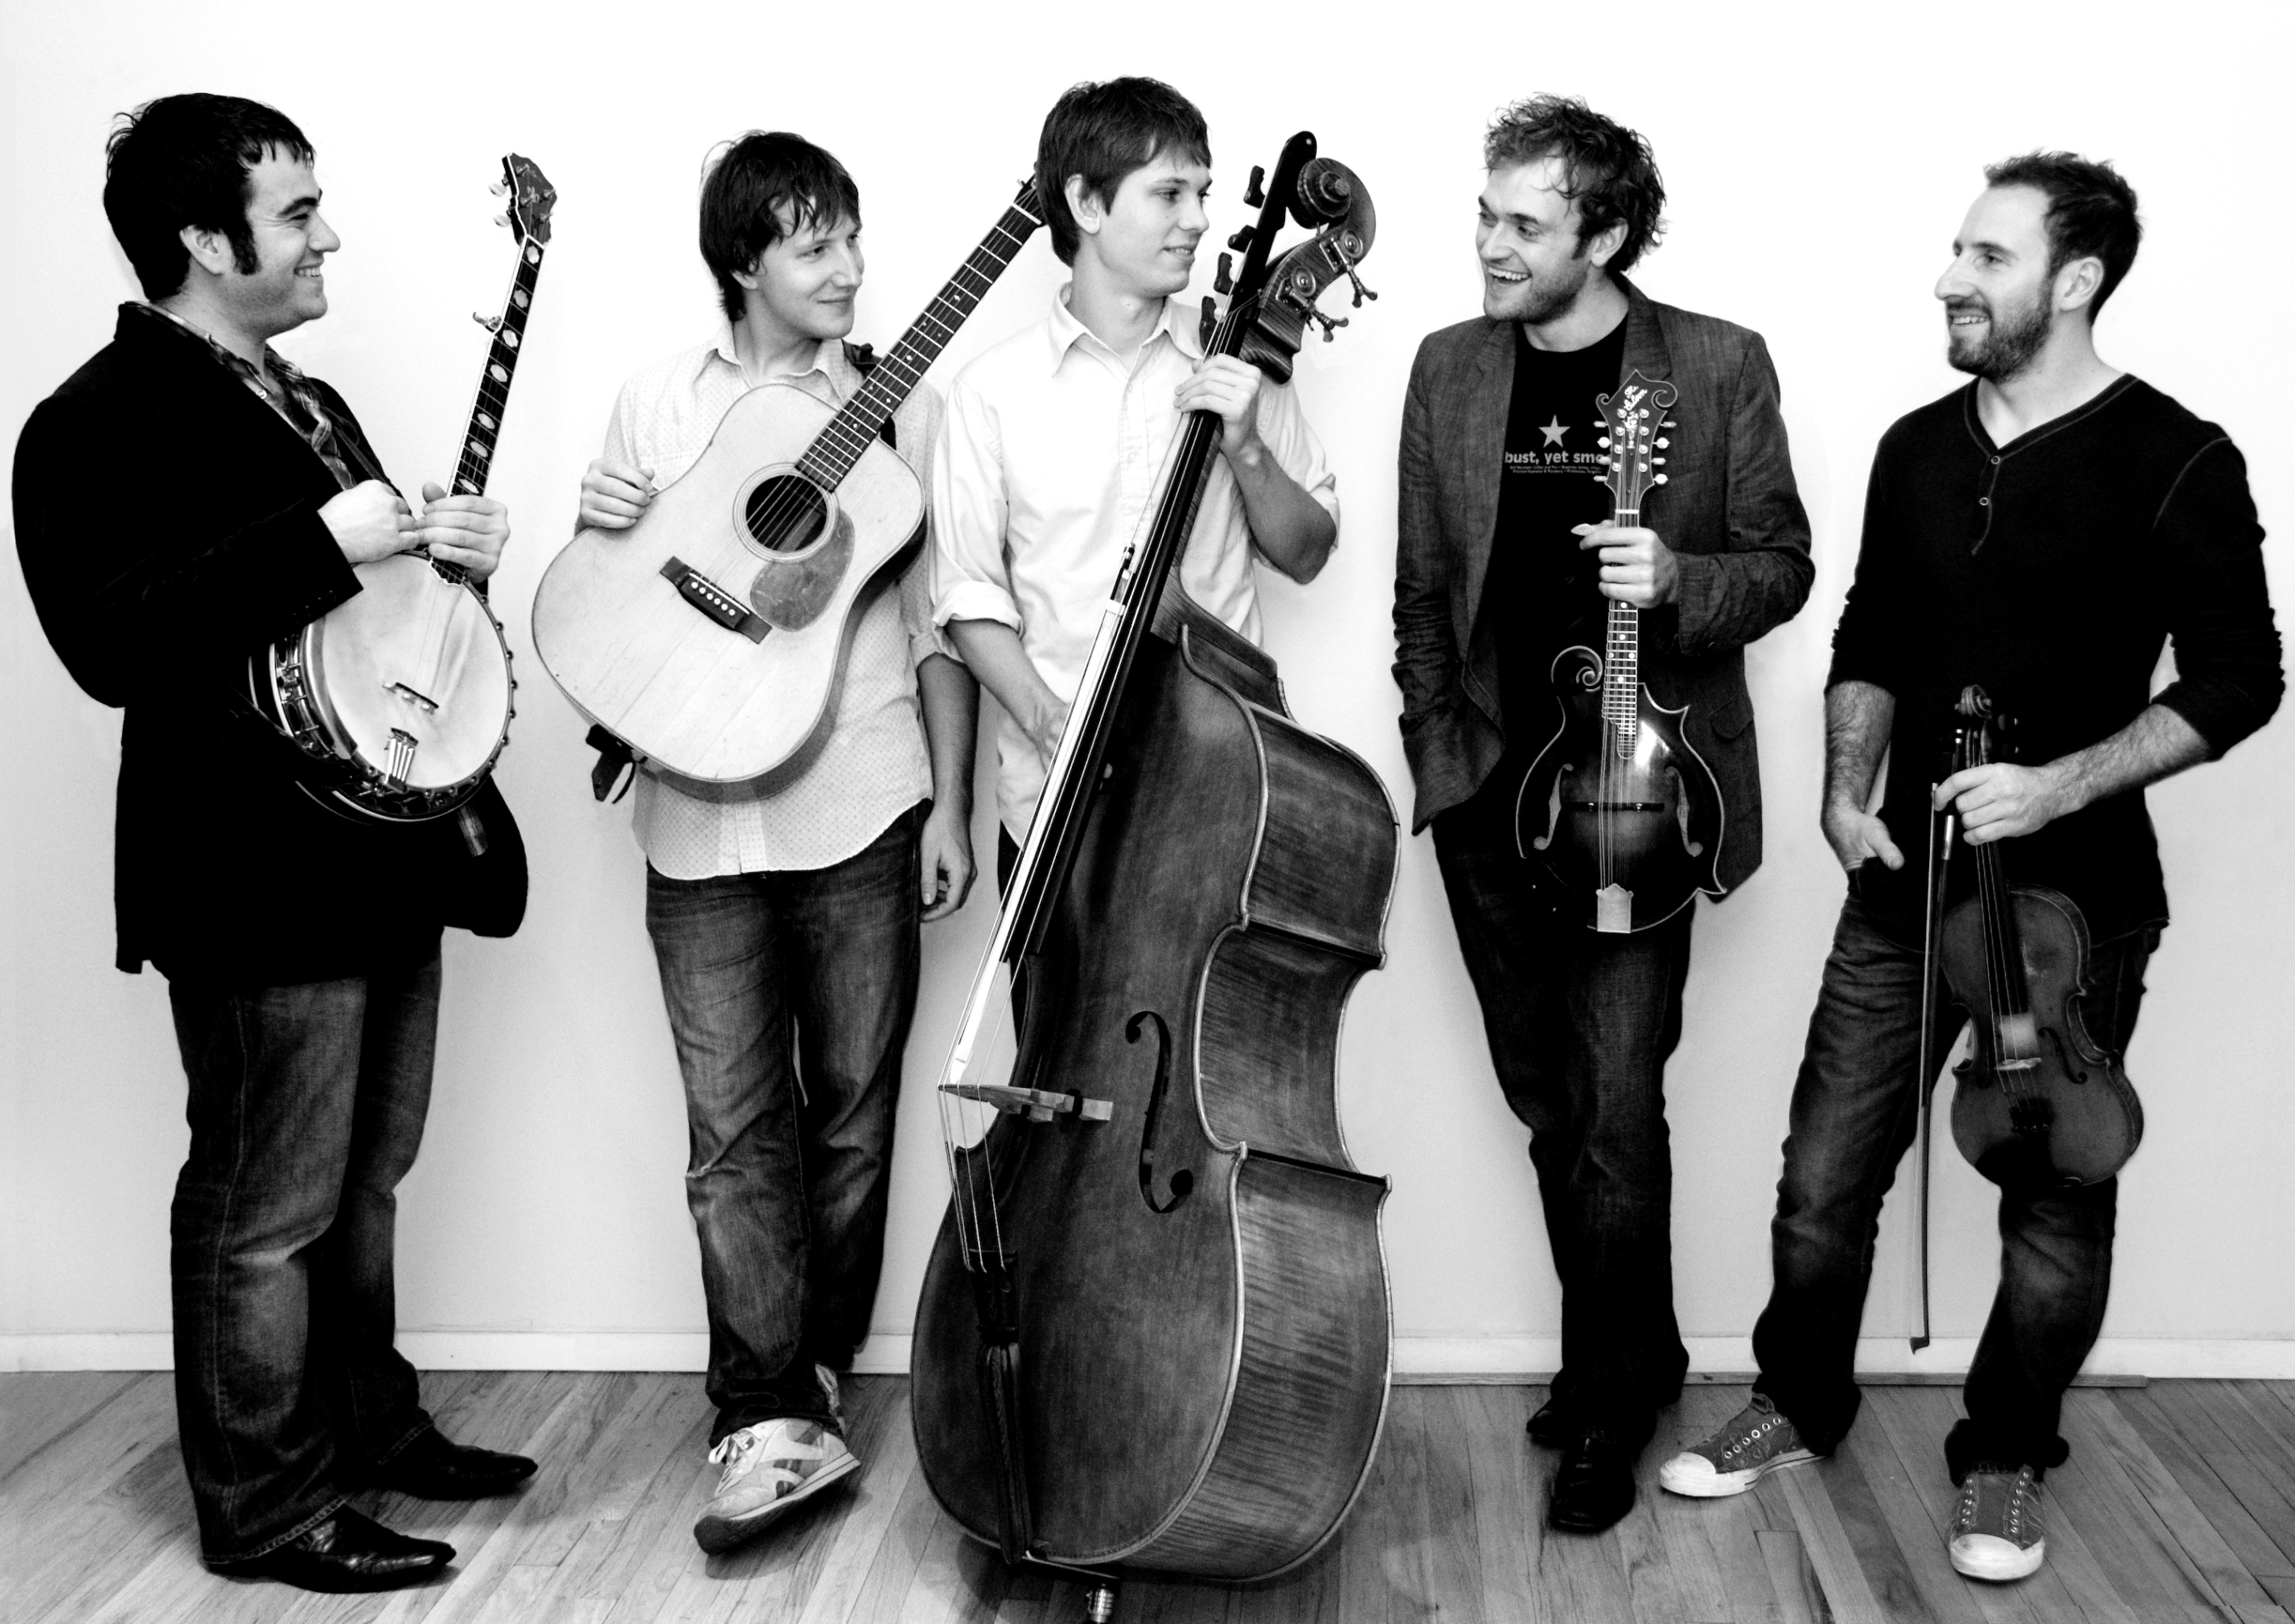 Punch Brothers - Wikipedia